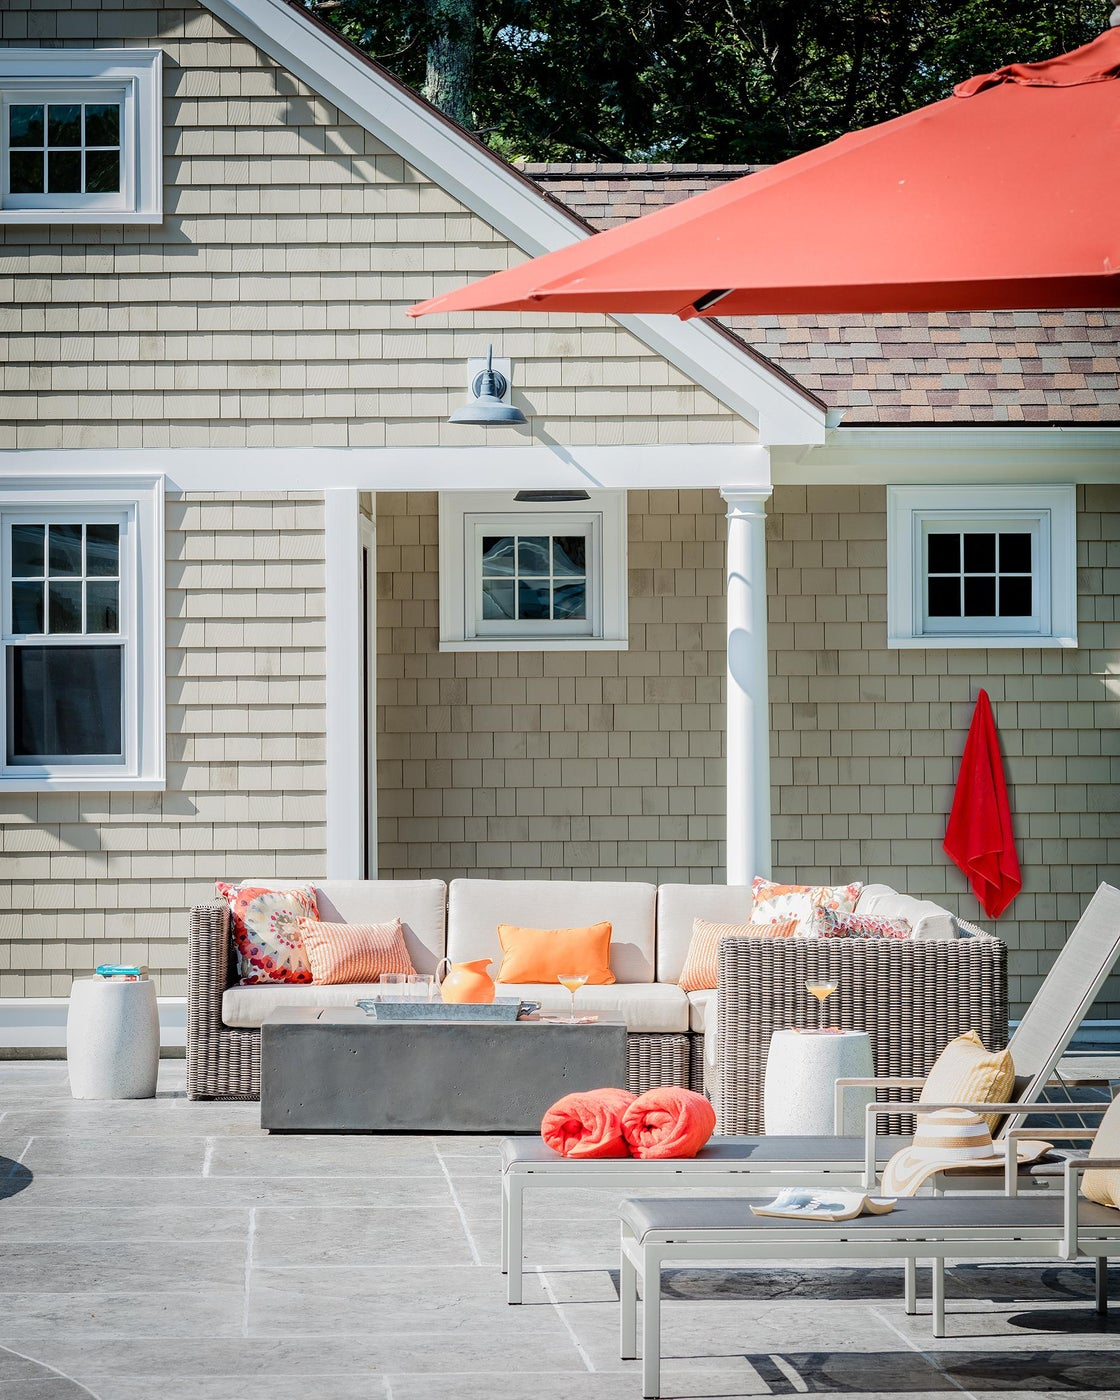 Pool House in Sherborn, MA